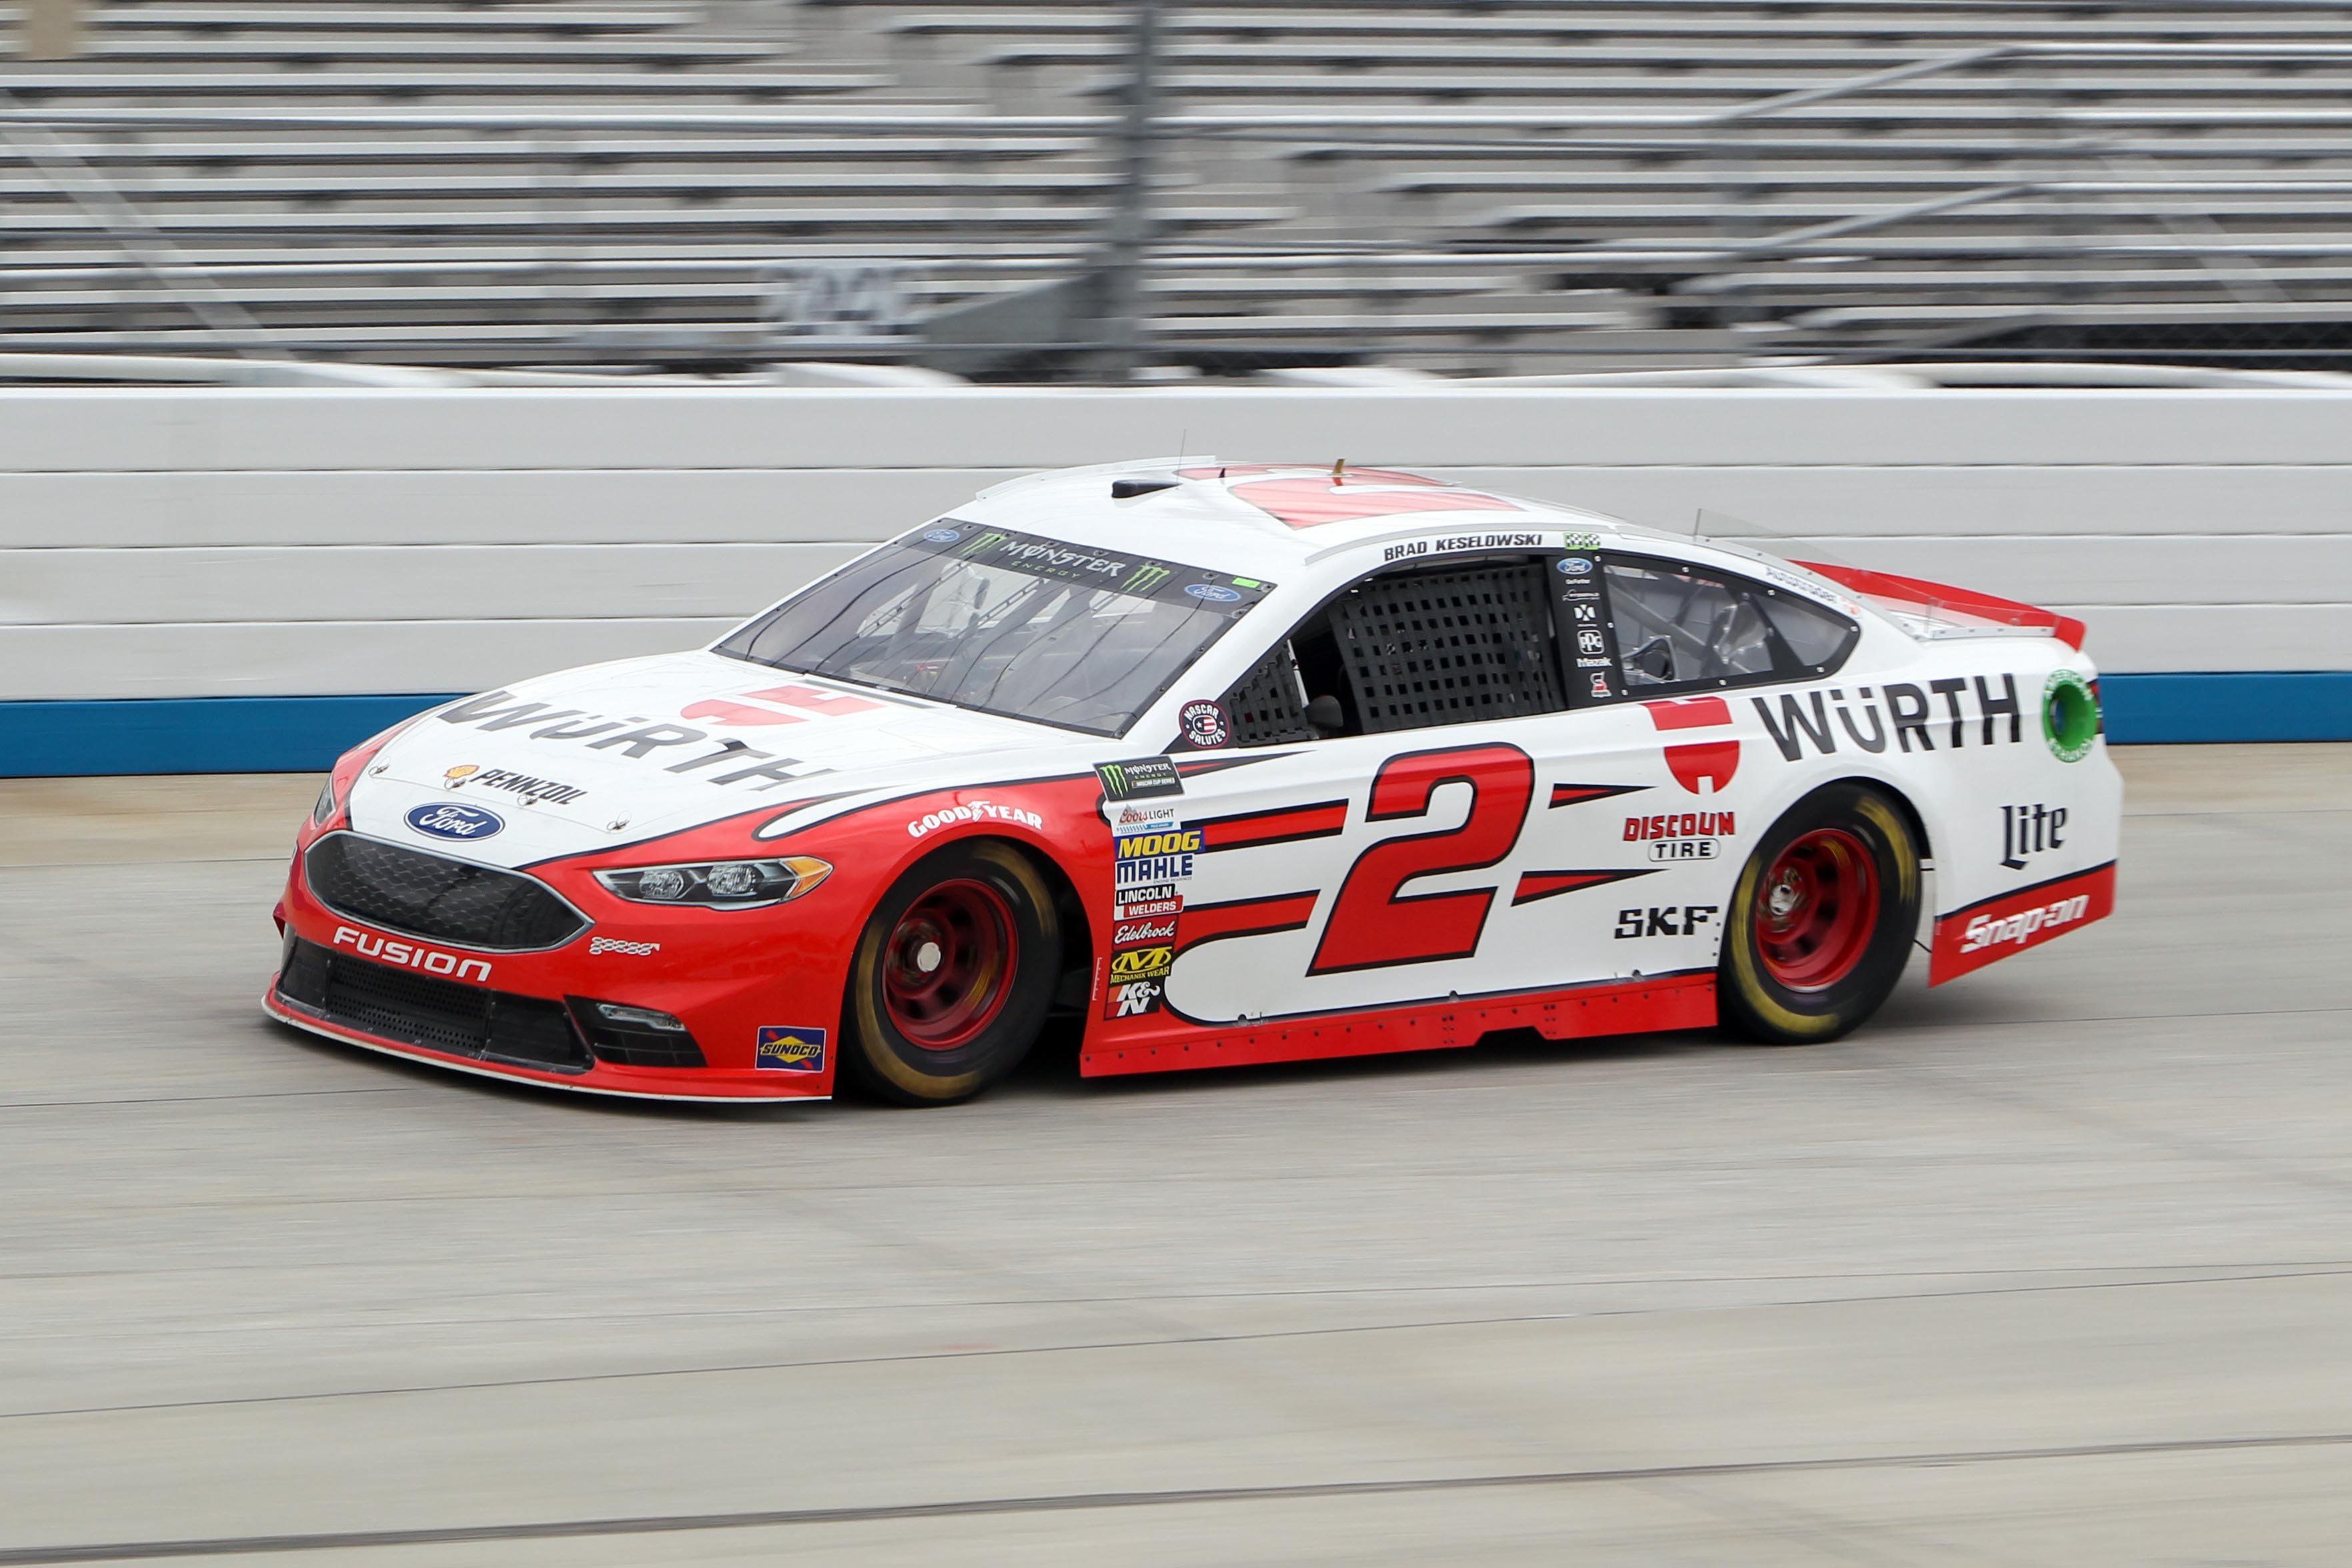 Ryan Blaney wins 1st career NASCAR Cup race at Pocono Raceway